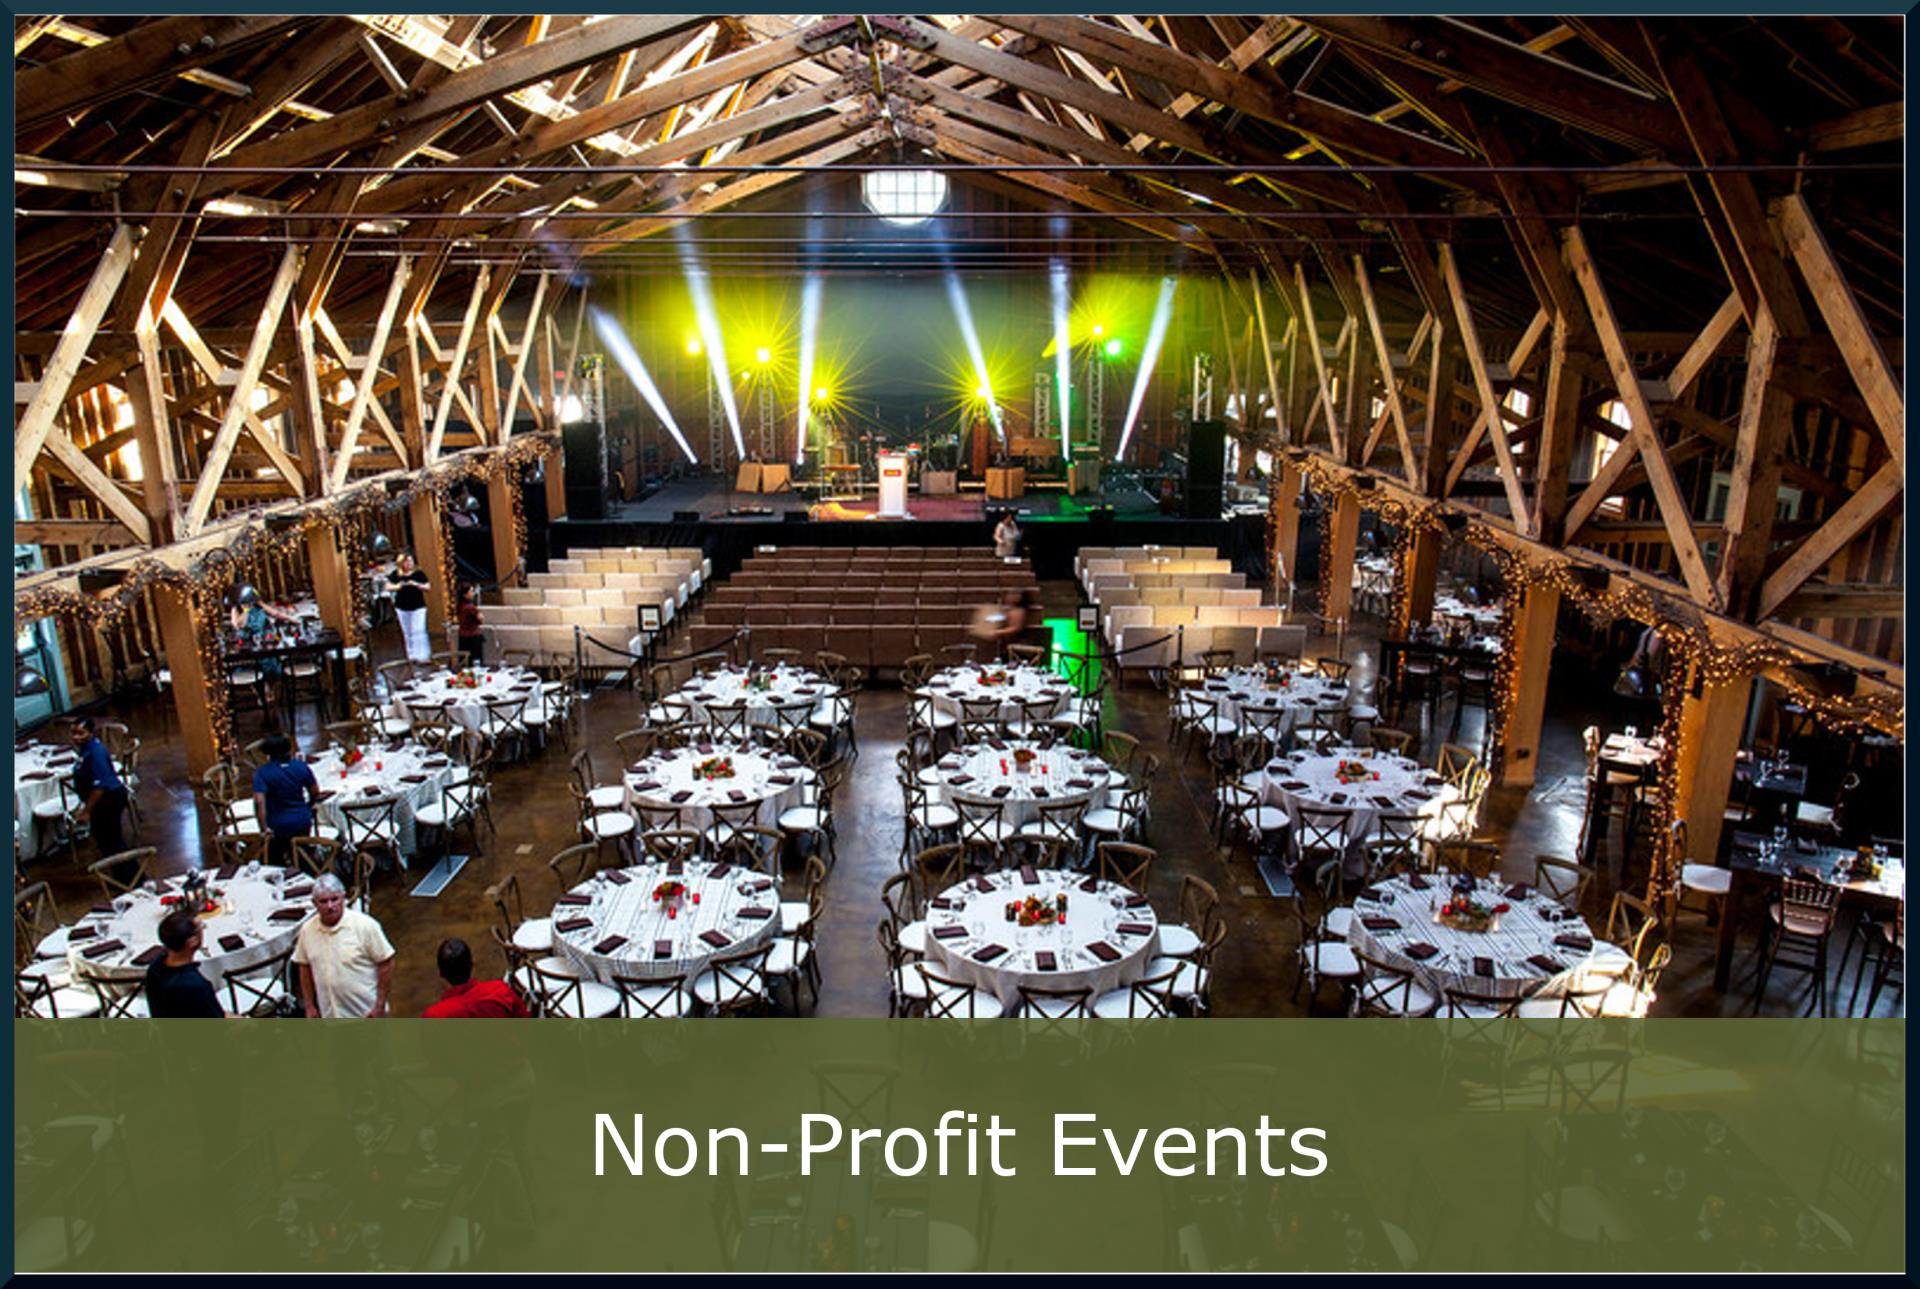 NonProfit Events